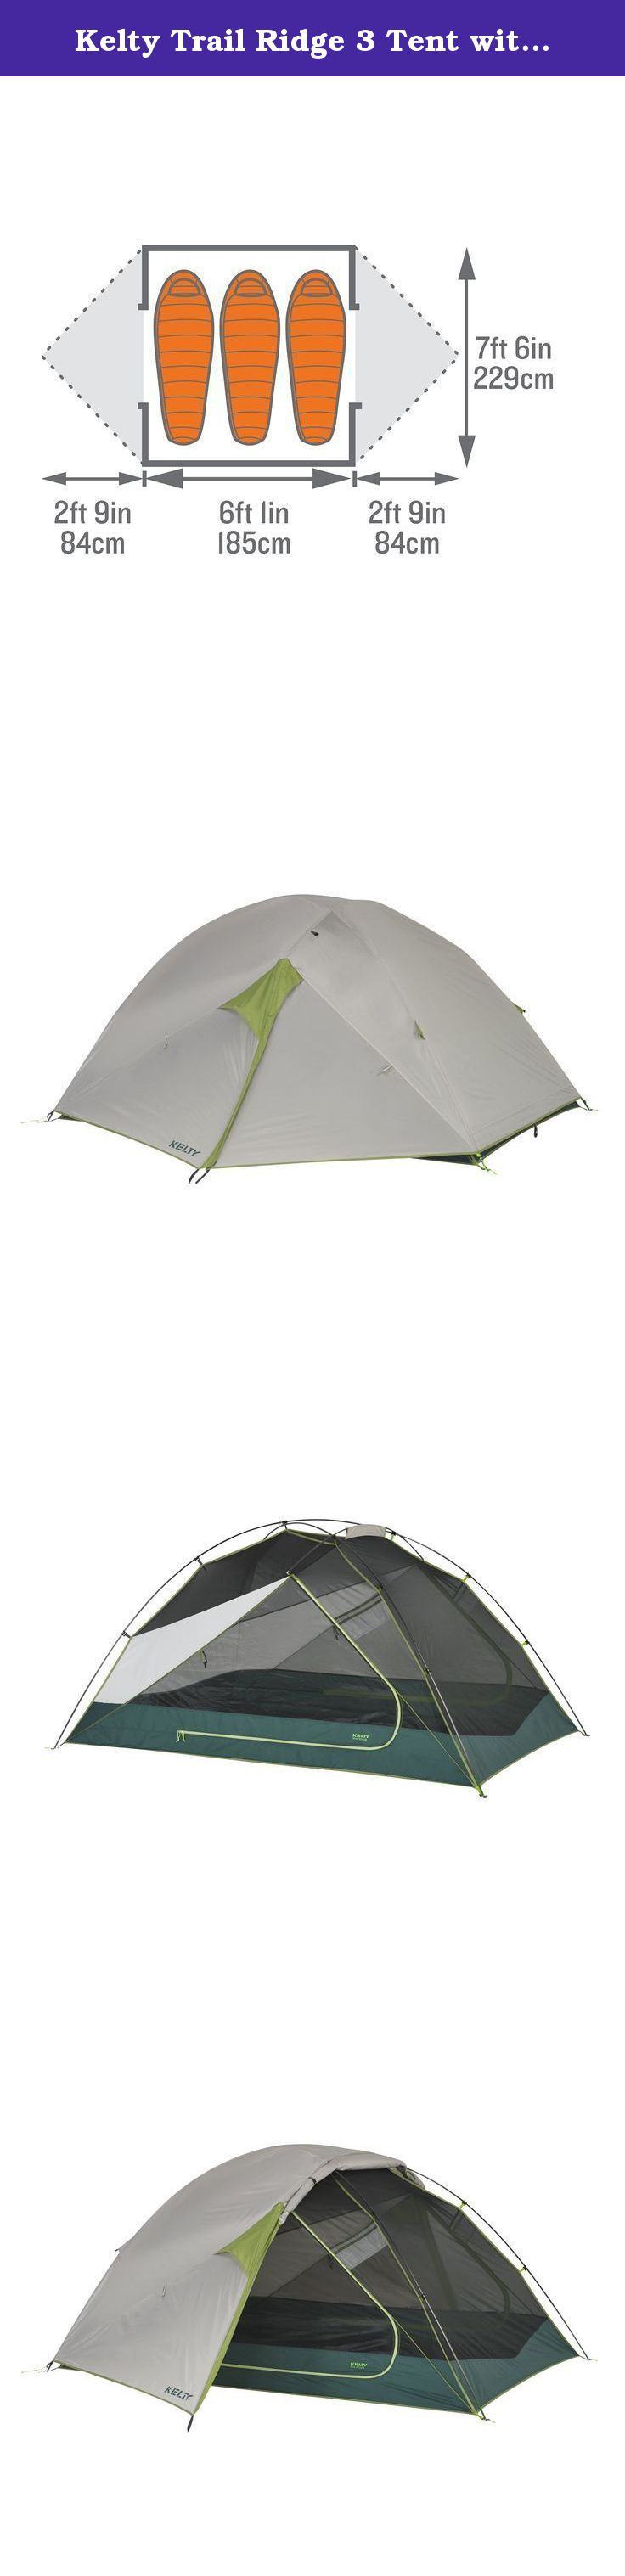 Kelty Trail Ridge 3 Tent with footprint - 3 Person. This hybrid cooler is designed  sc 1 st  Pinterest & Kelty Trail Ridge 3 Tent with footprint - 3 Person. This hybrid ...